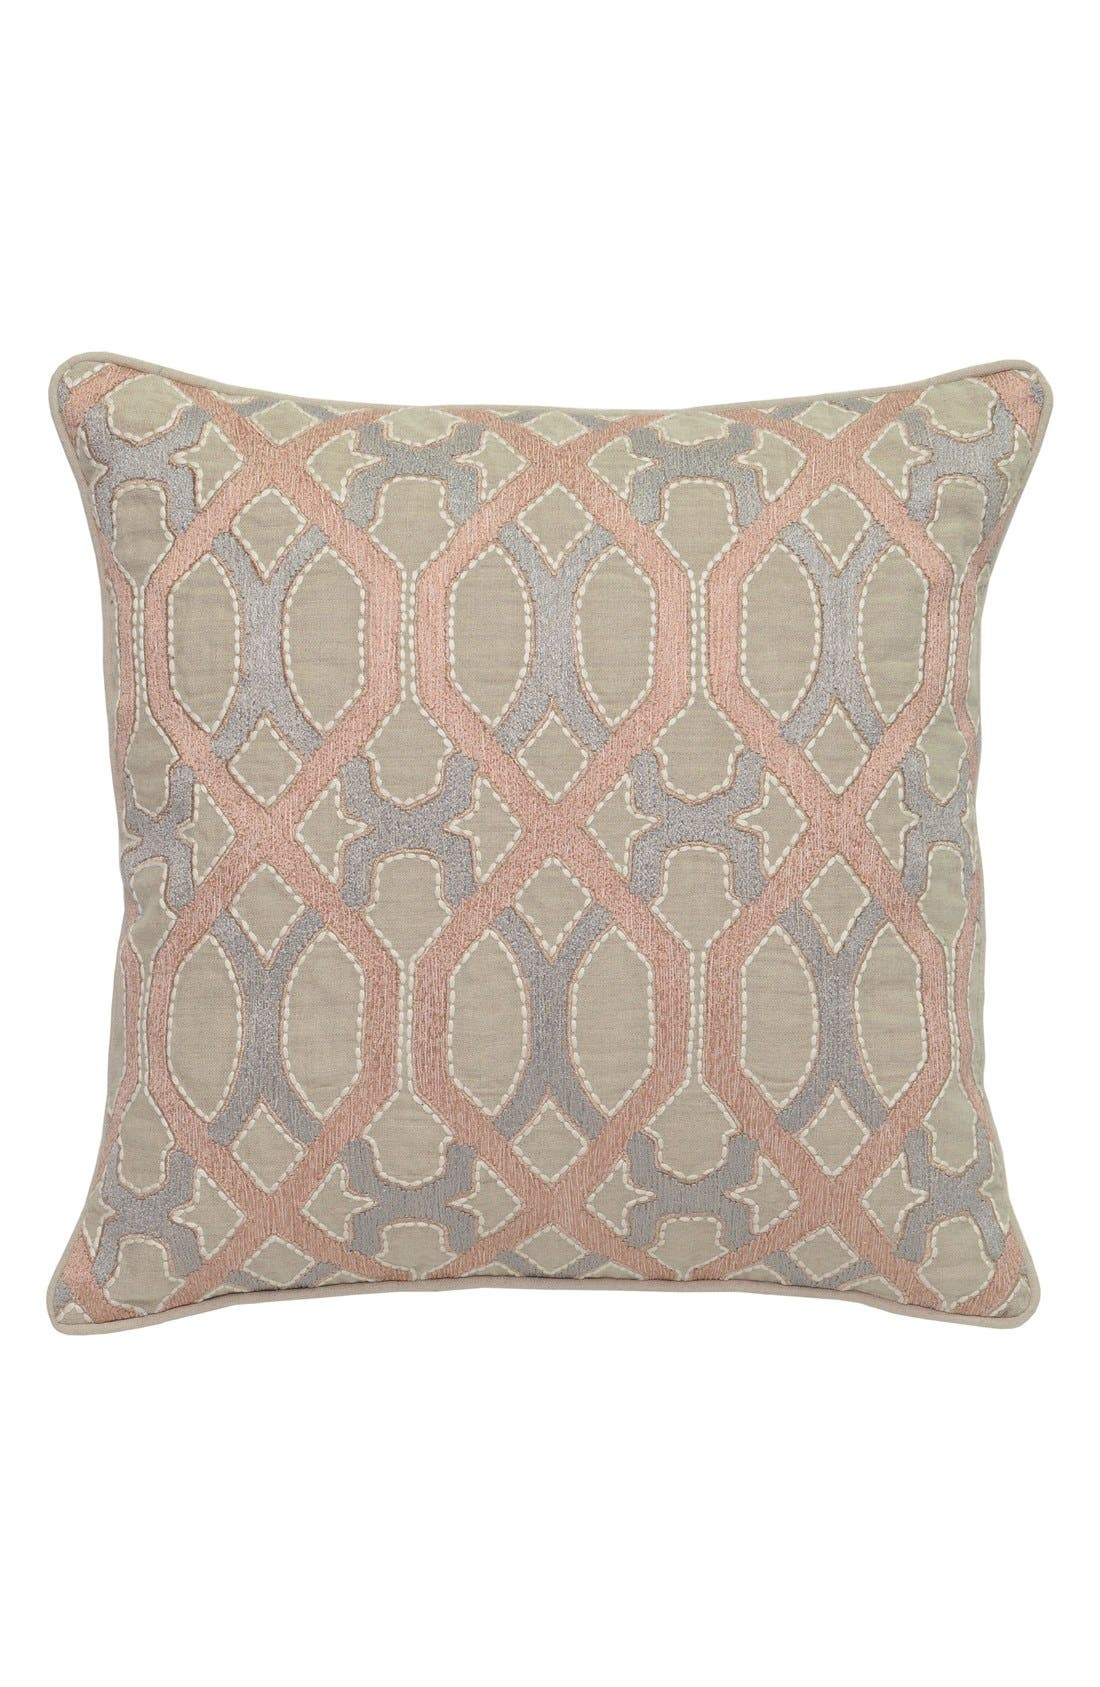 Villa Home Collection 'Lois' Accent Pillow